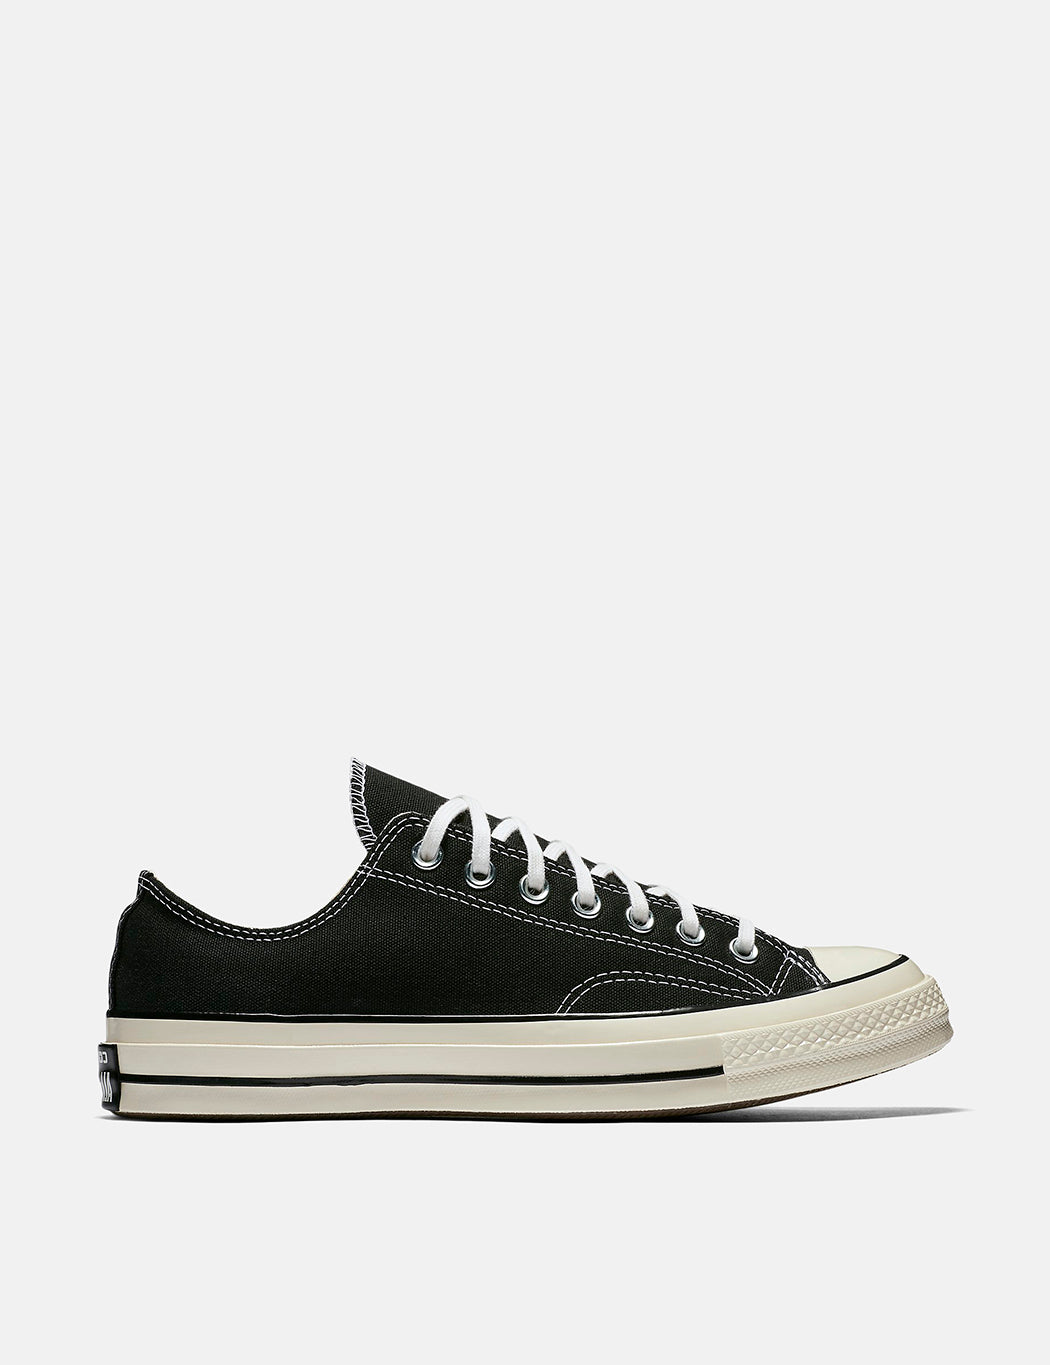 fb15851e013e Converse 70 s Chuck Taylor Low 162058C (Canvas) in Black